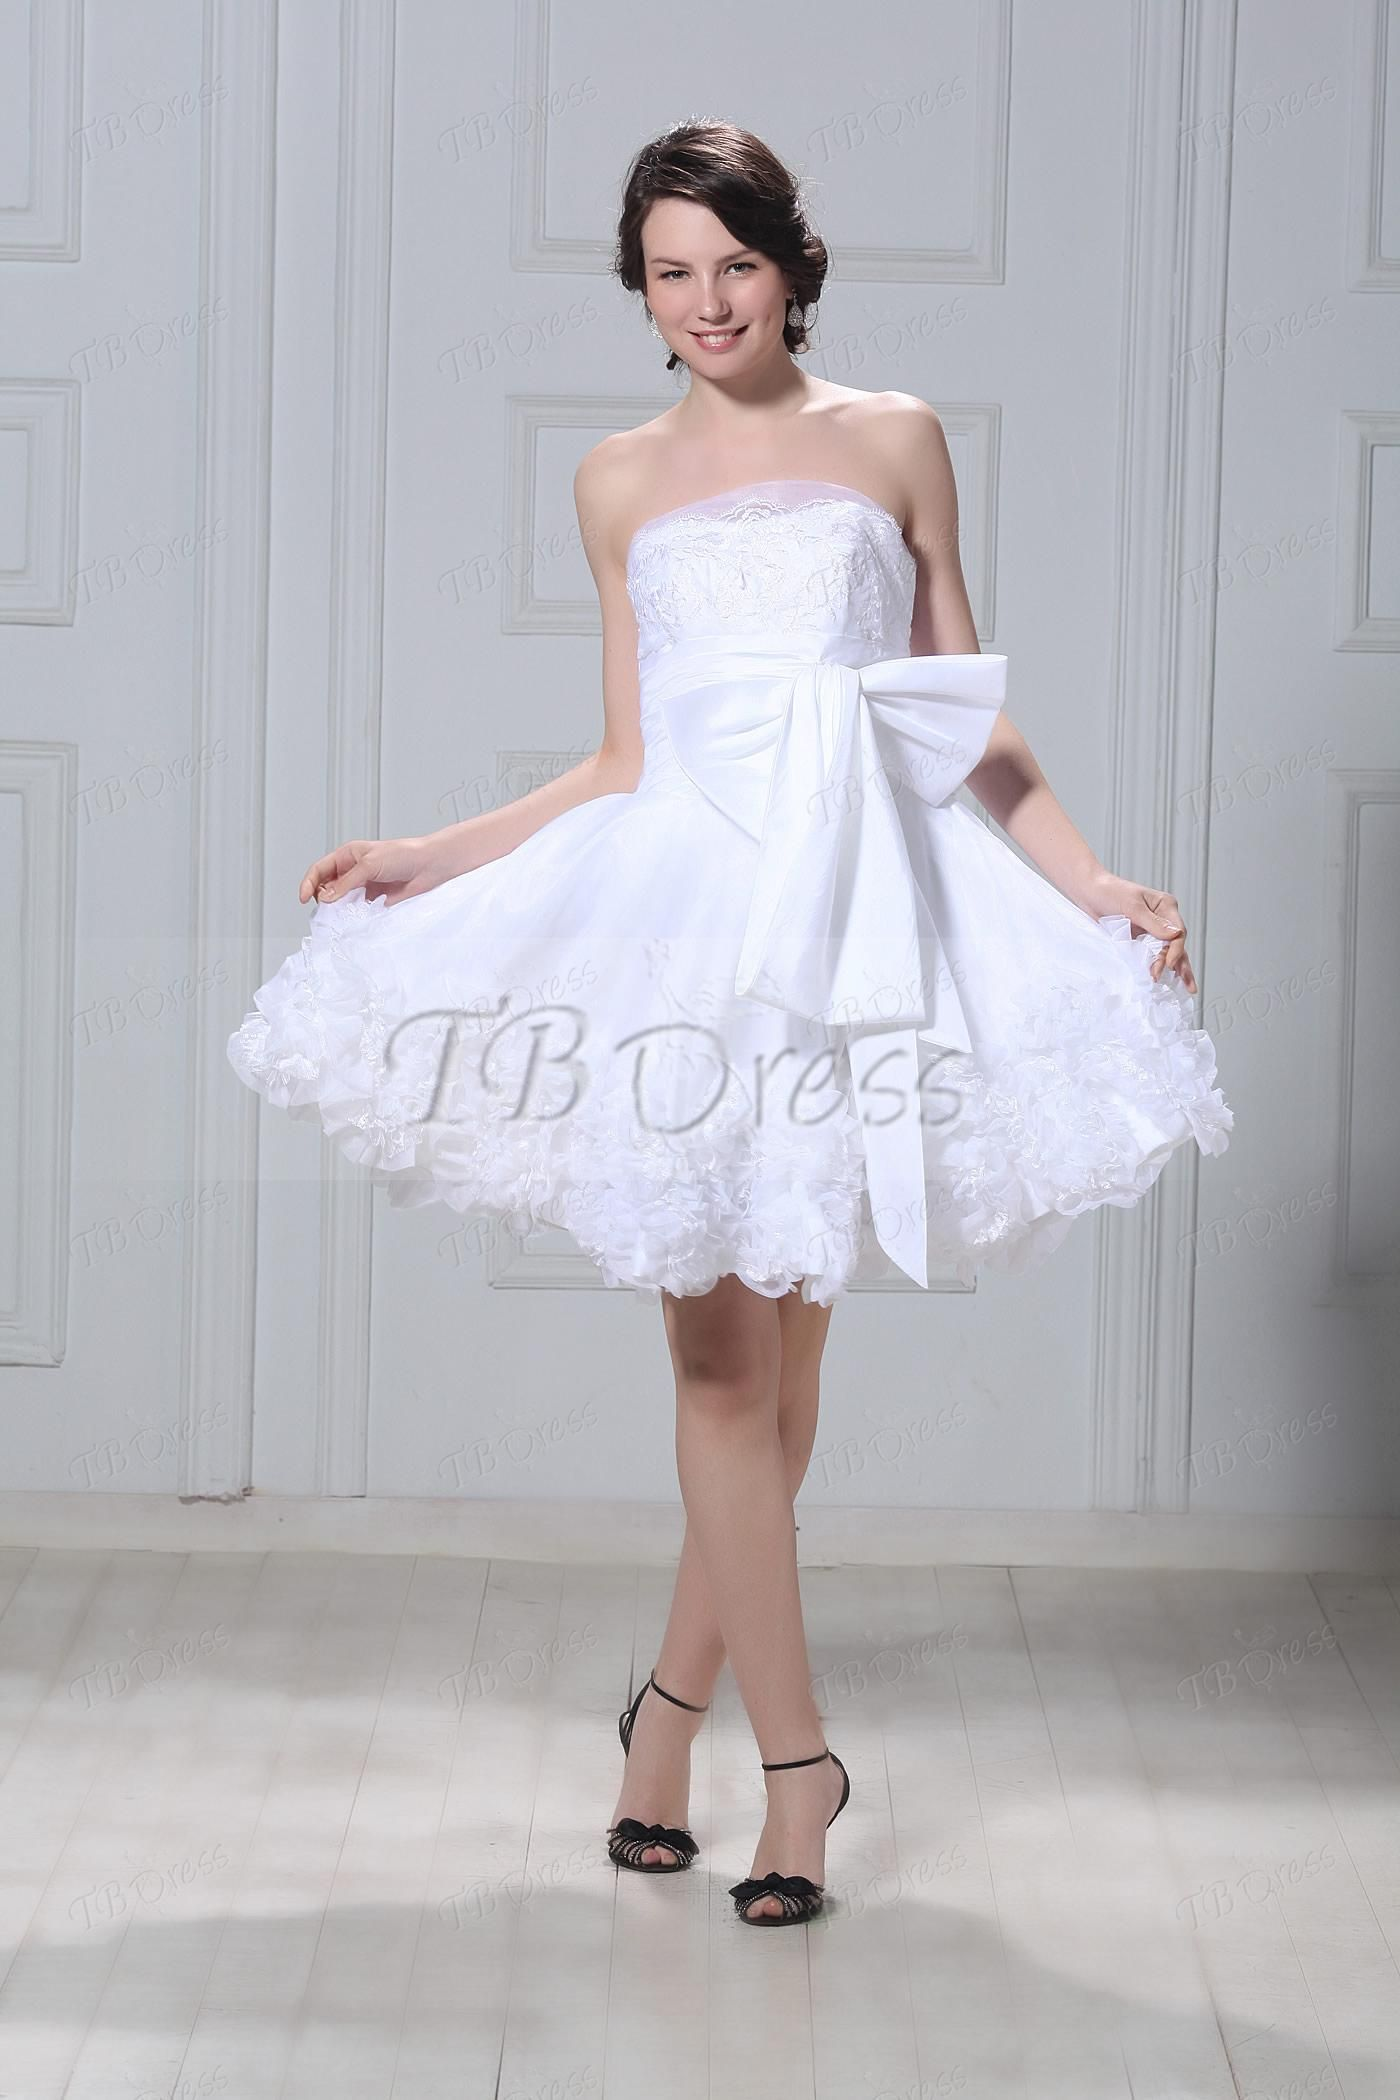 Aline shortminilength strapless flowers talineus wedding dress